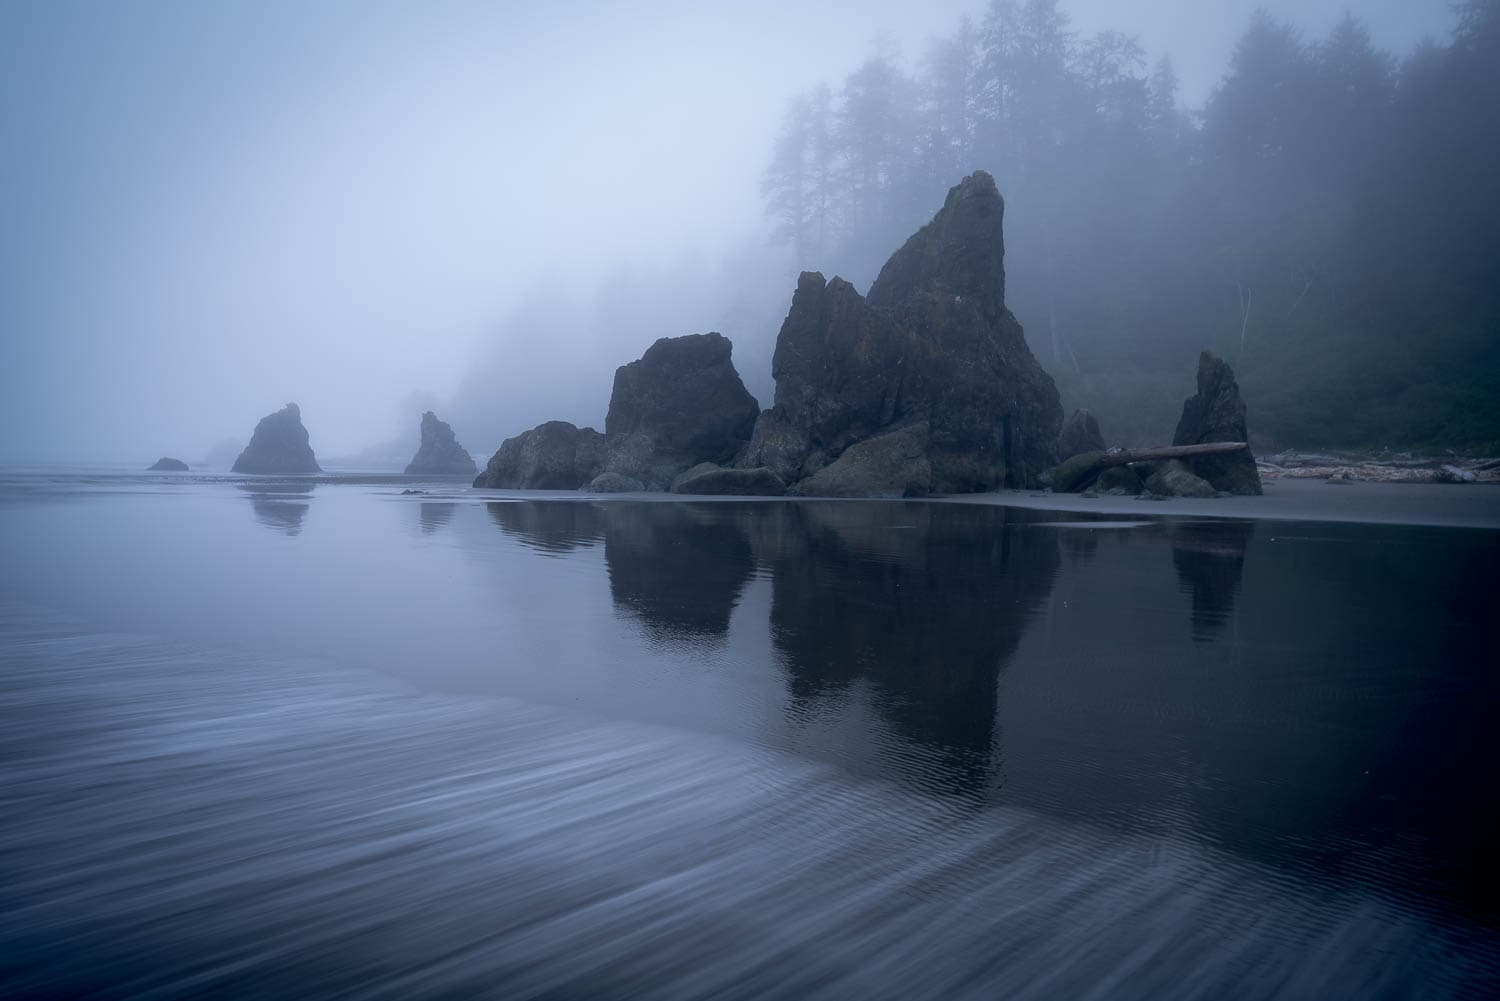 Foggy beach with rock outcropping and forest